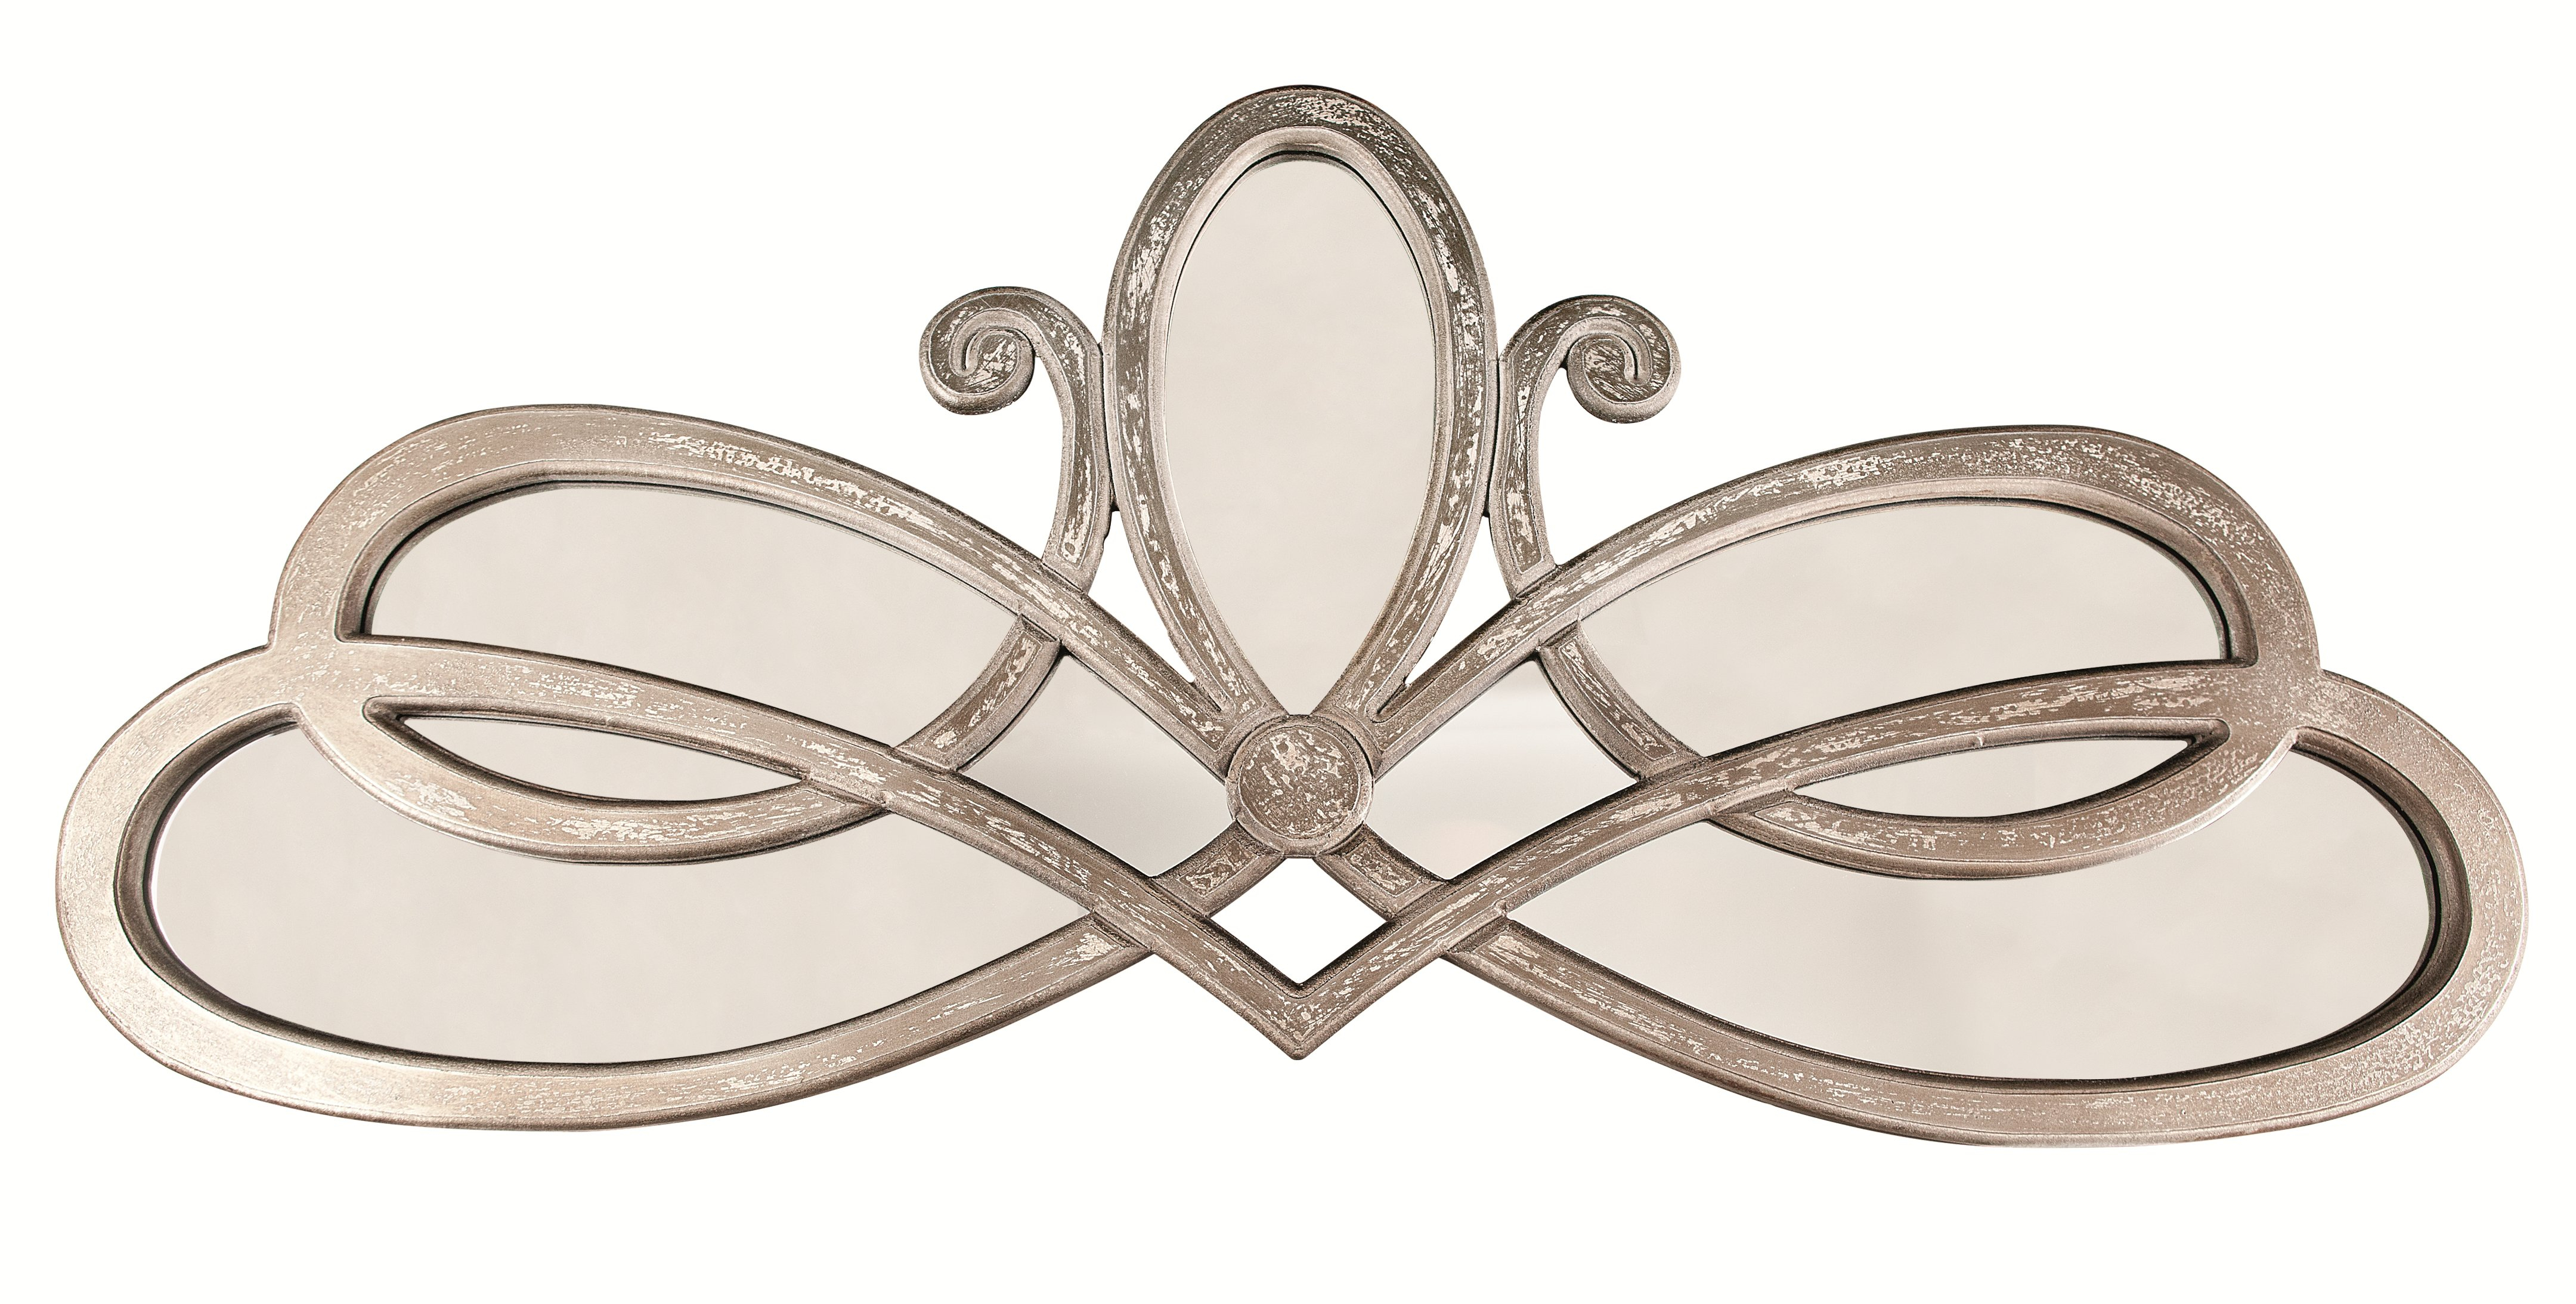 Polen Traditional Wall Mirror With Regard To Polen Traditional Wall Mirrors (View 2 of 30)